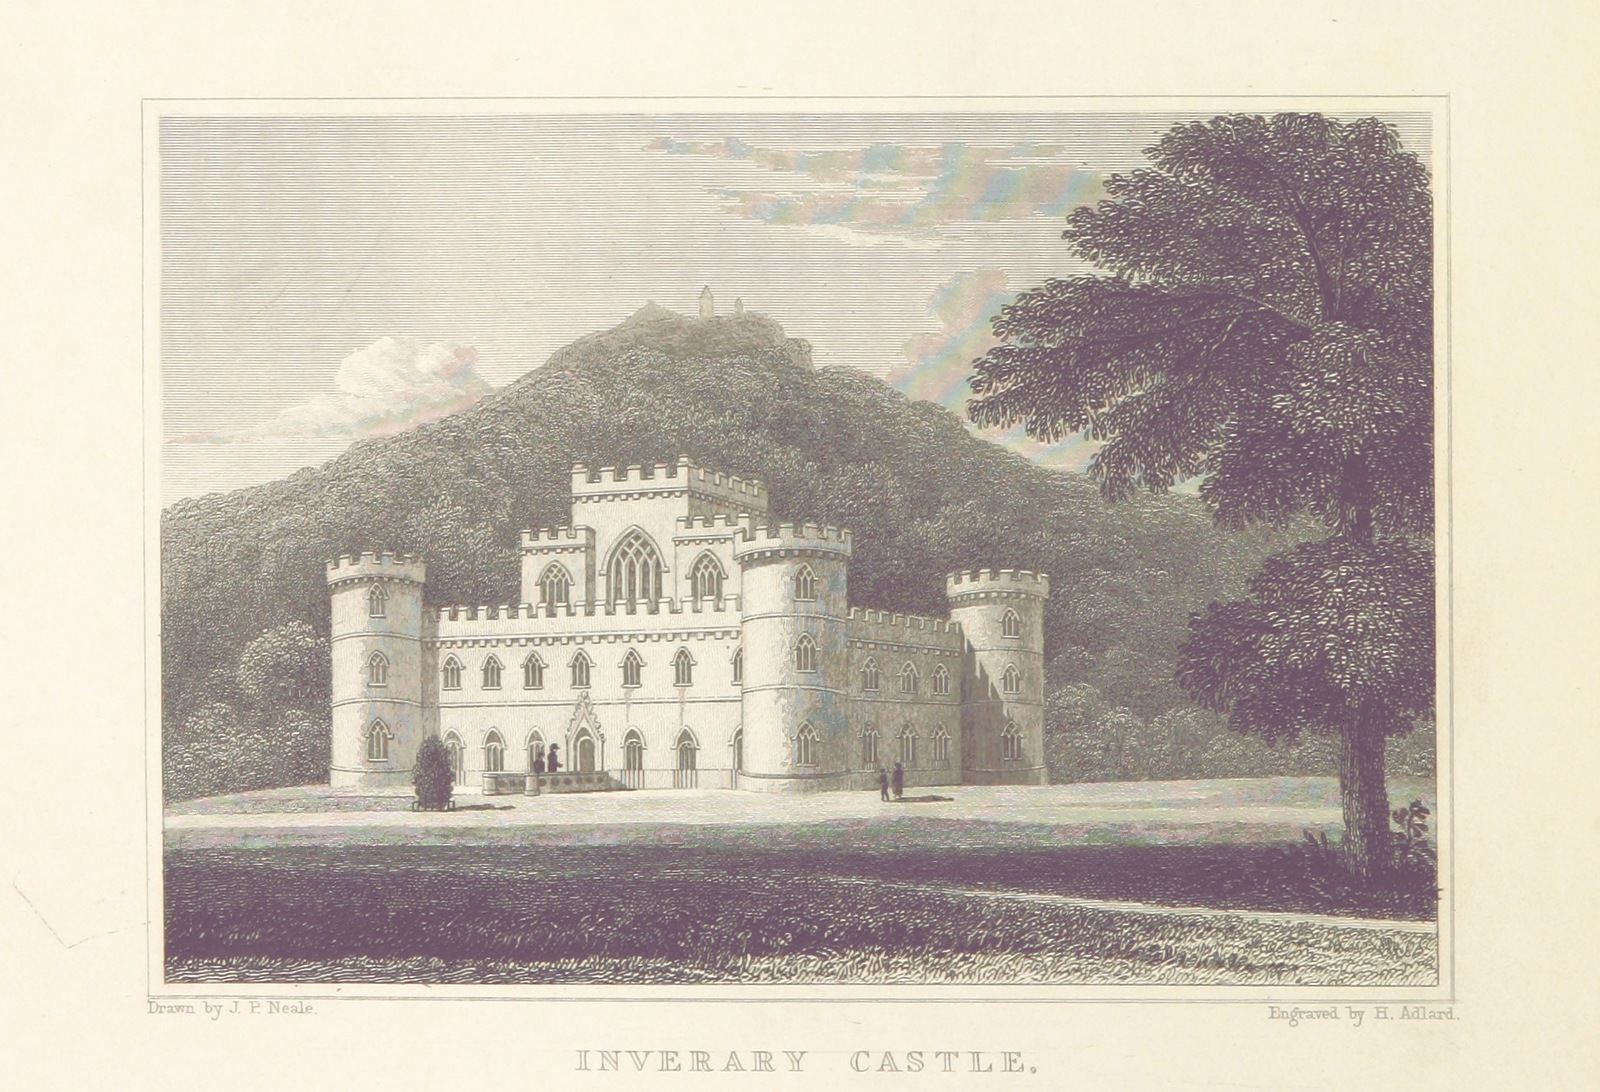 """seat of the Duke of Argyll, chief of Clan Campbell from """"Modern Athens, displayed in a series of views; or, Edinburgh in the nineteenth century; exhibiting the whole of the new buildings, modern improvements, antiquities, & picturesque scenery of the Scottish metropolis & its environs, from original drawings by Mr. T. H. Shepherd. With historical, topographical & critical illustrations [by John Britton]"""""""